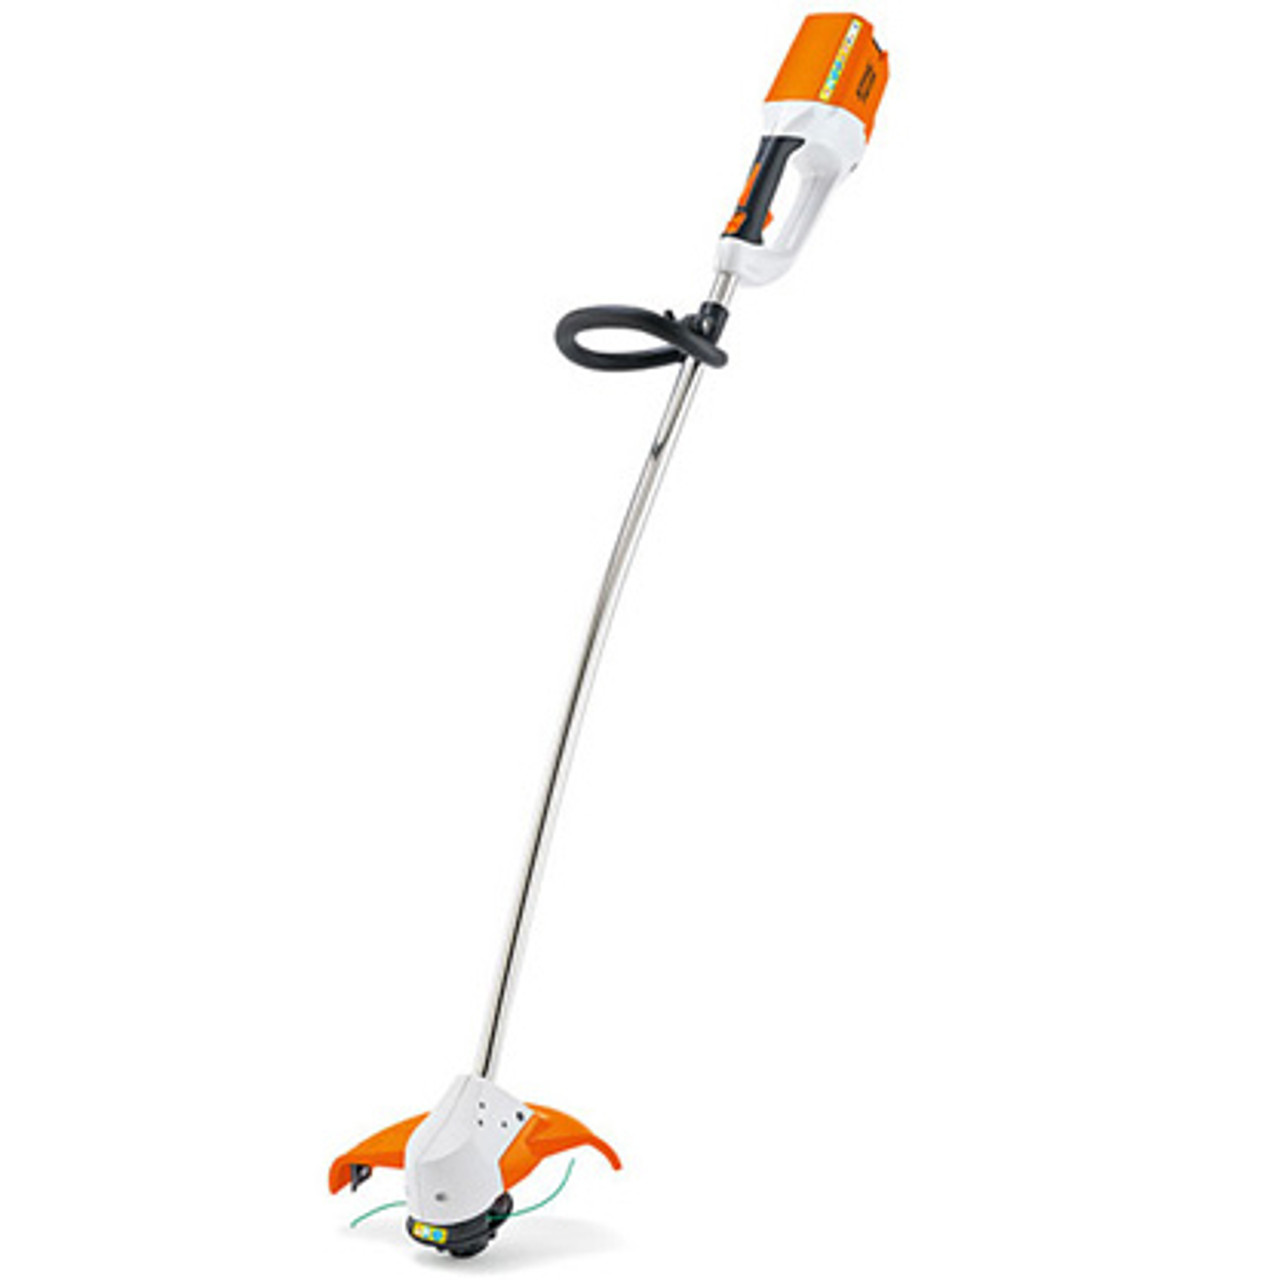 STIHL FSA 65 36V Curved Shaft String Trimmer (Battery & Charger Not Included) Image